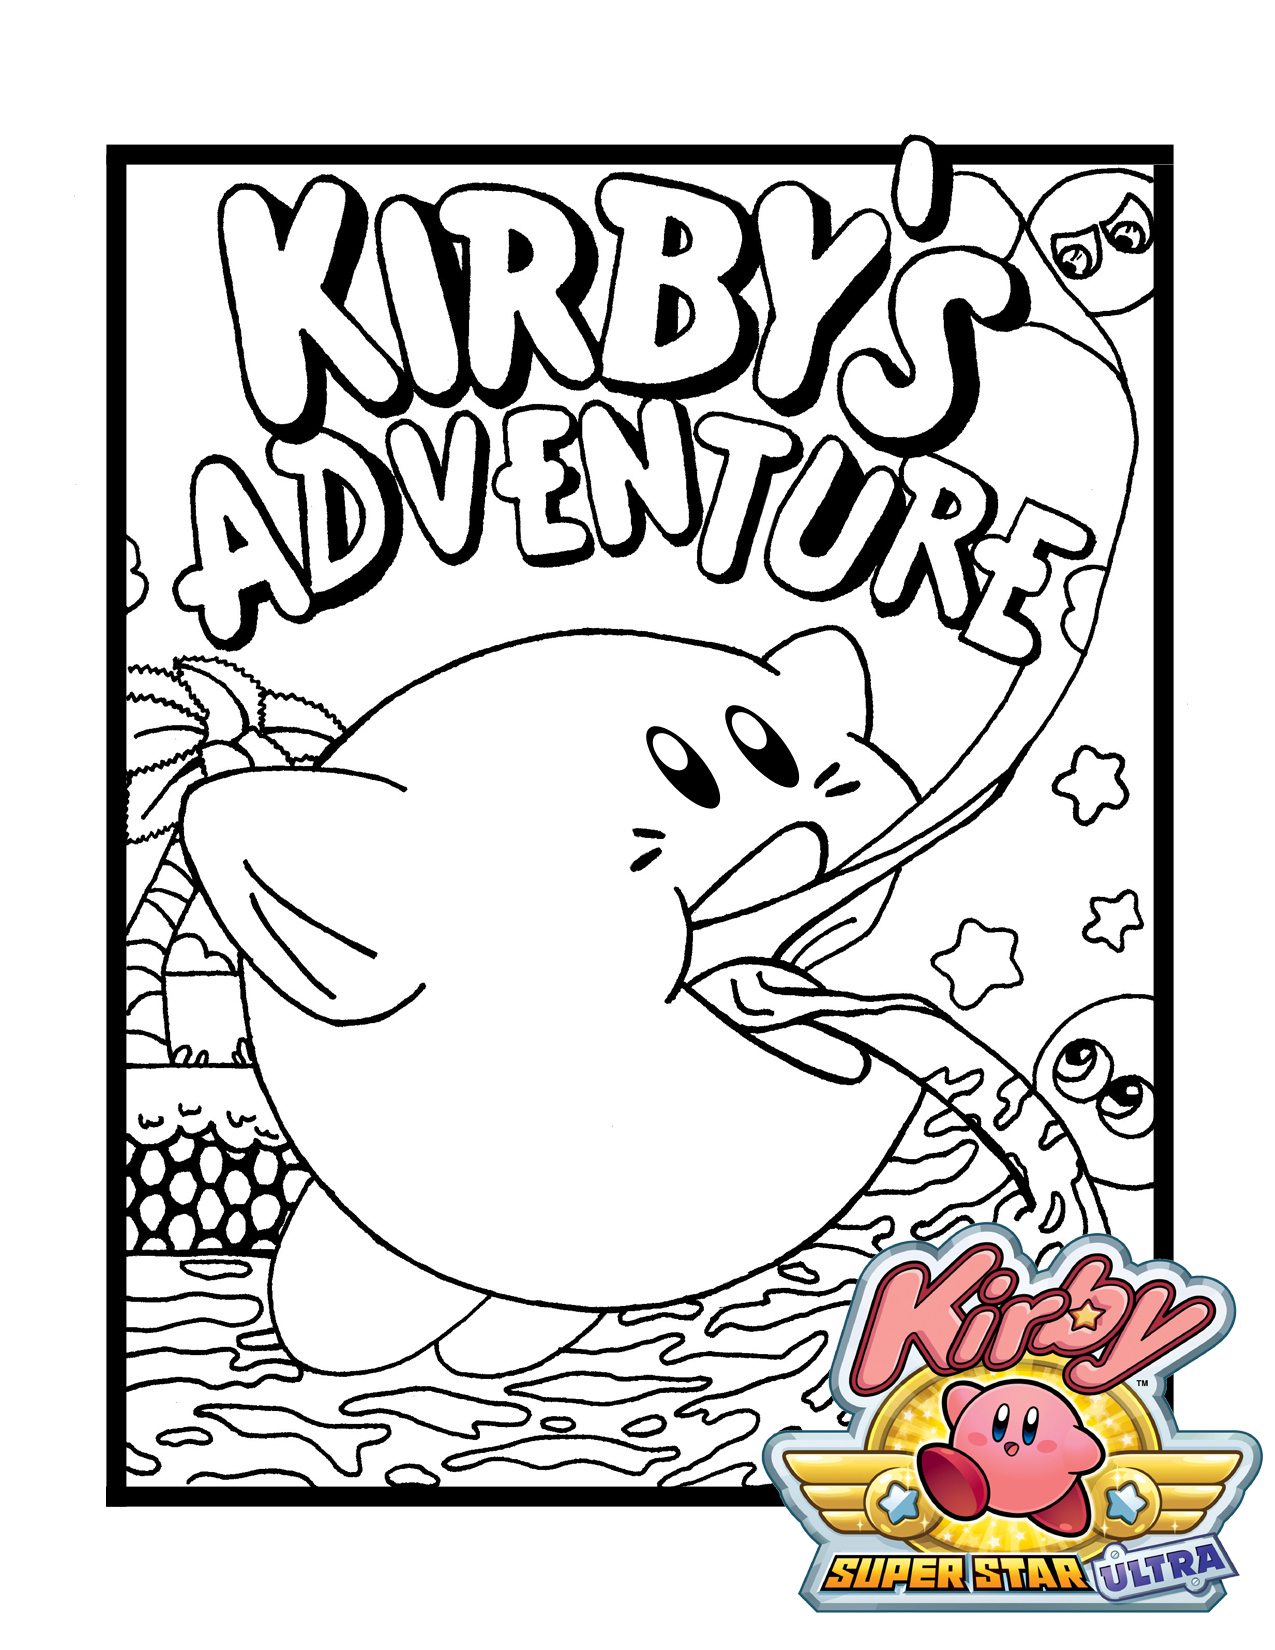 Kirby Adventure Coloring Page Printable